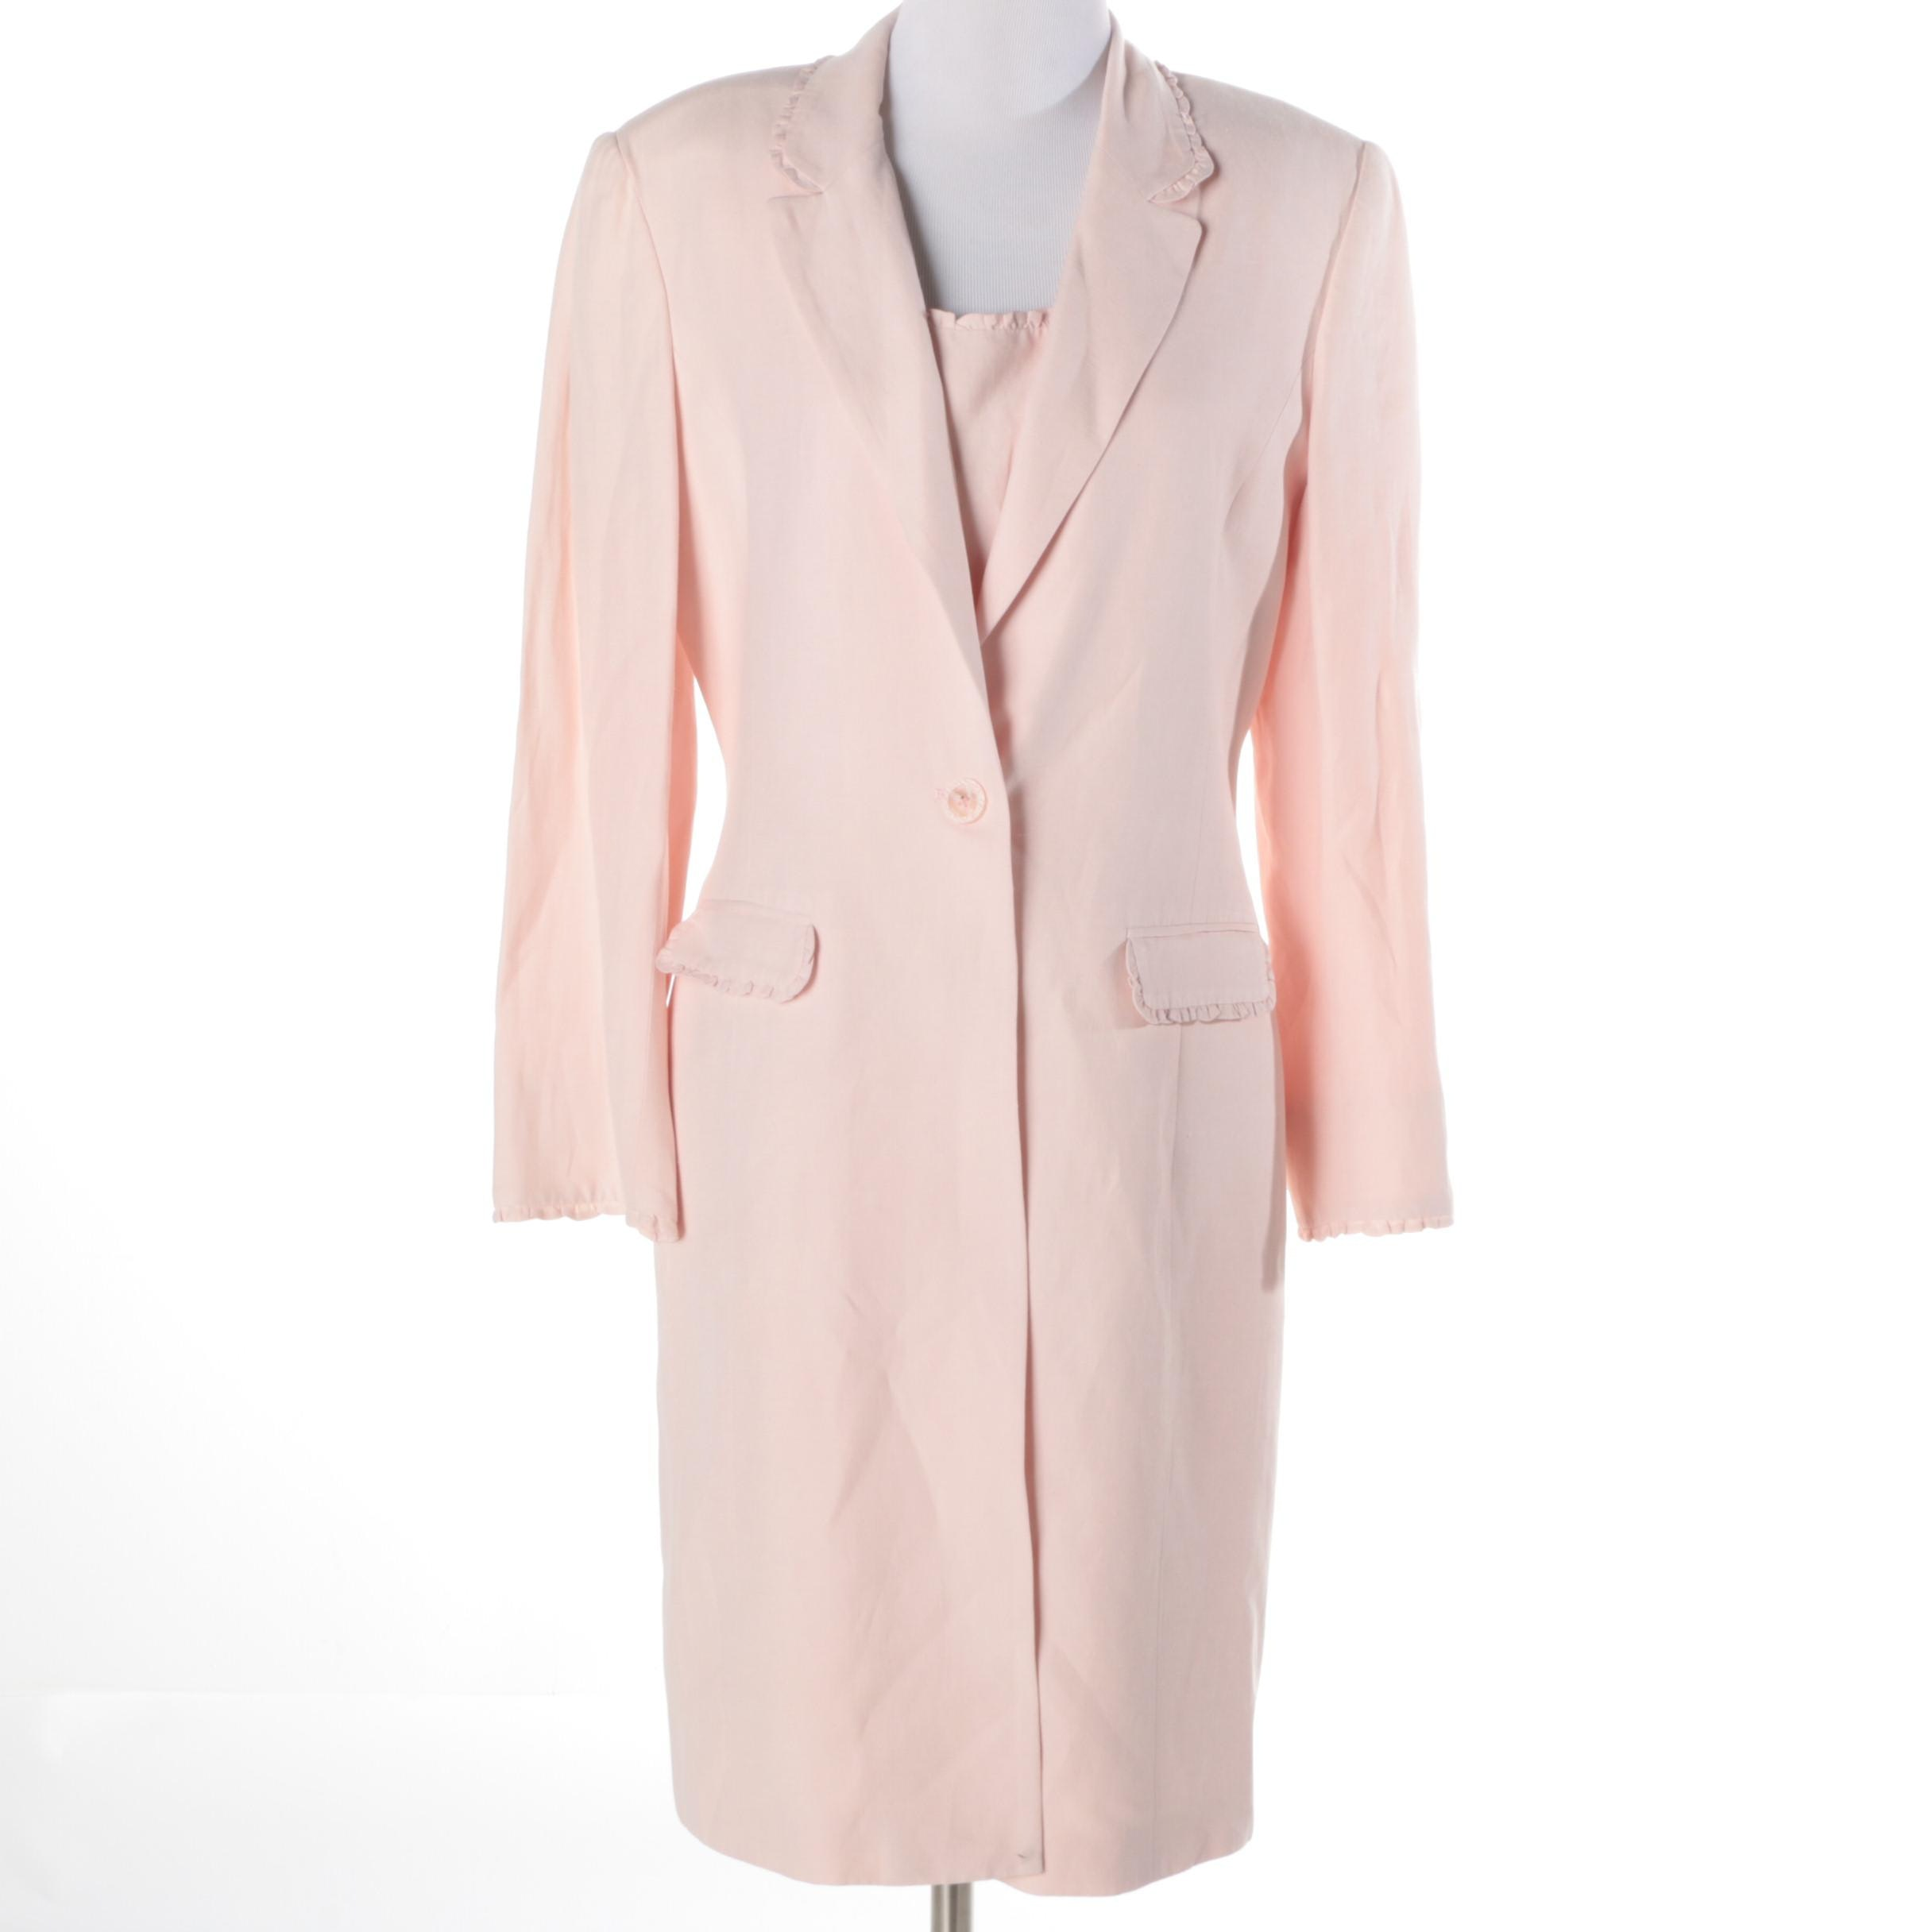 Bergamo by Ebi Pink Silk and Linen Blend Dress and Coat